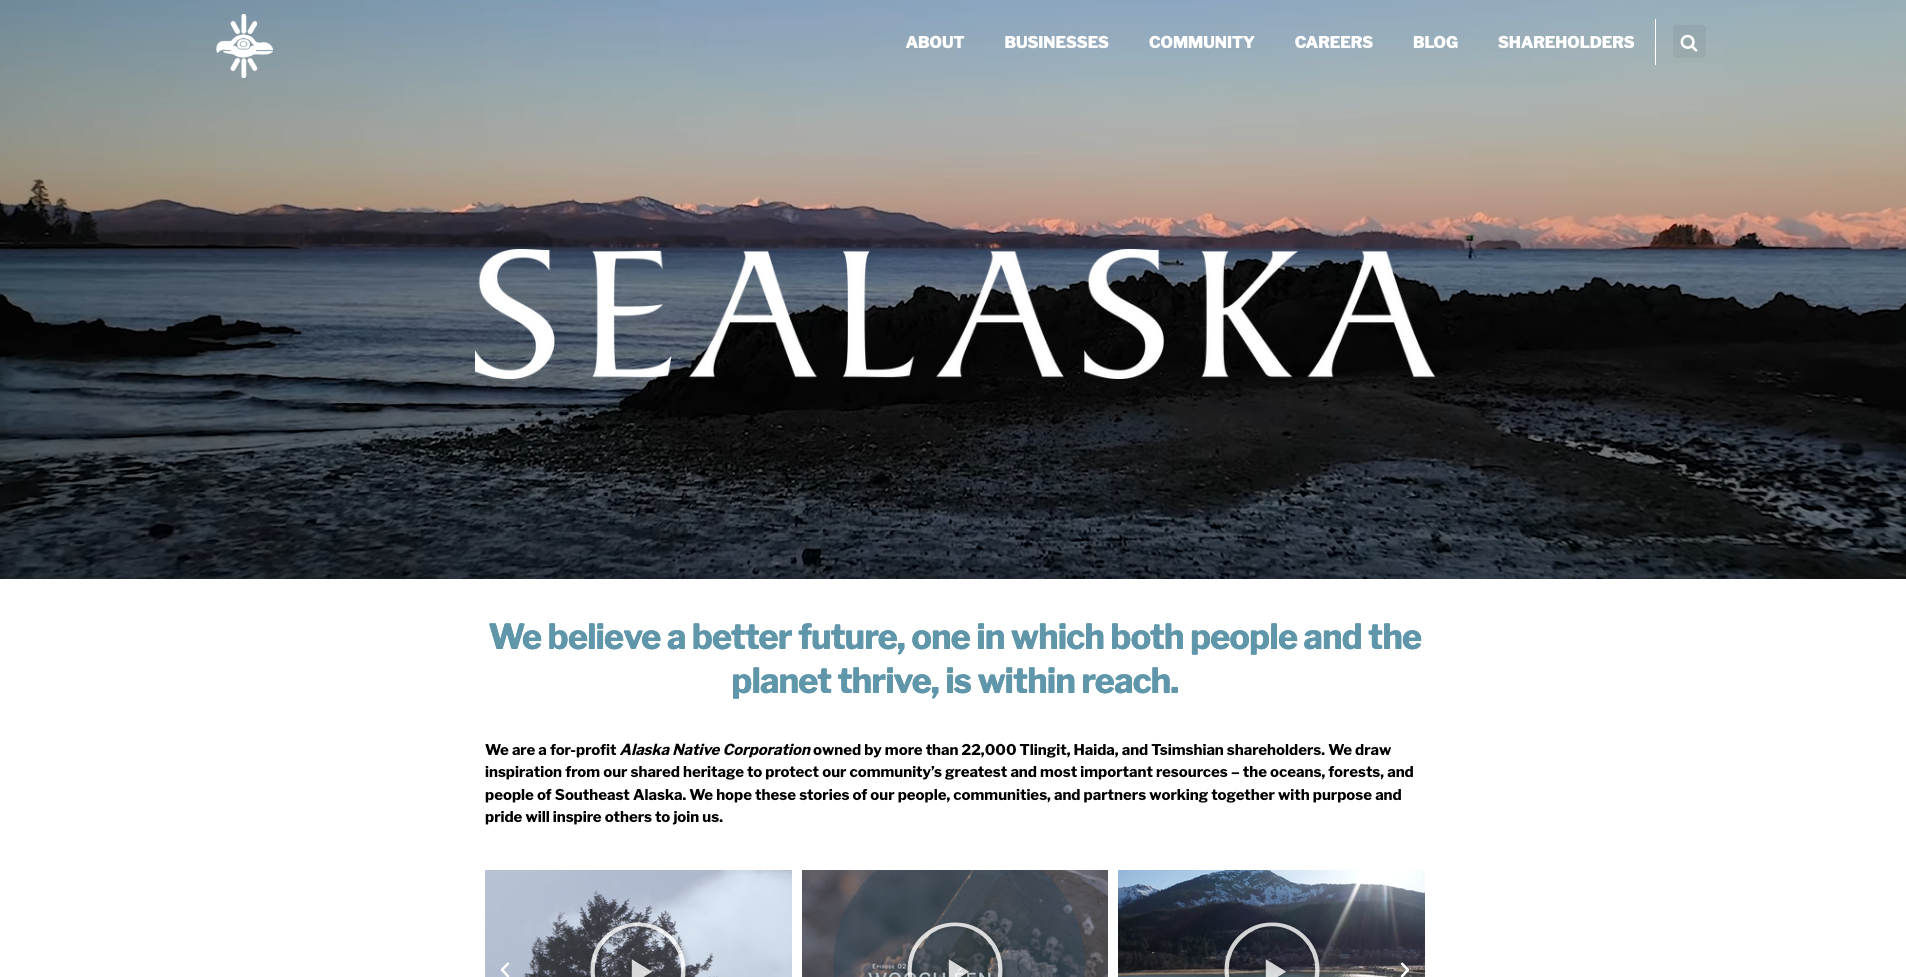 The home page of the new  Sealaska website  Soulcraft designed and created the storytelling content for alongside Sealaska's community, leadership, and our partners  Why For Good .